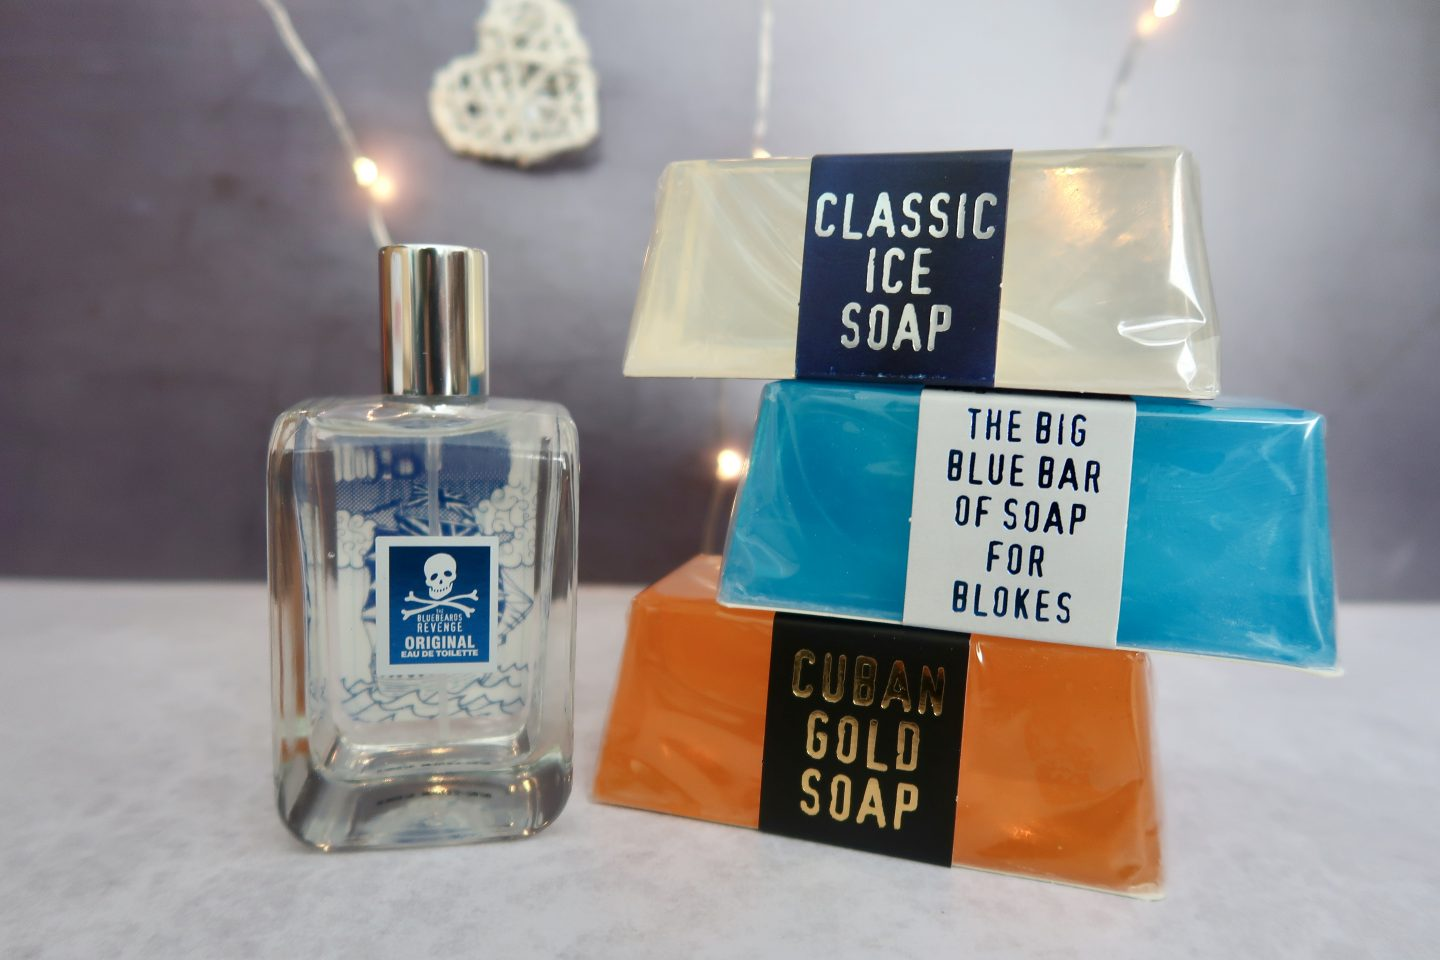 A bottle of aftershave next to a stack of 3 bars of soaps in ingot shape